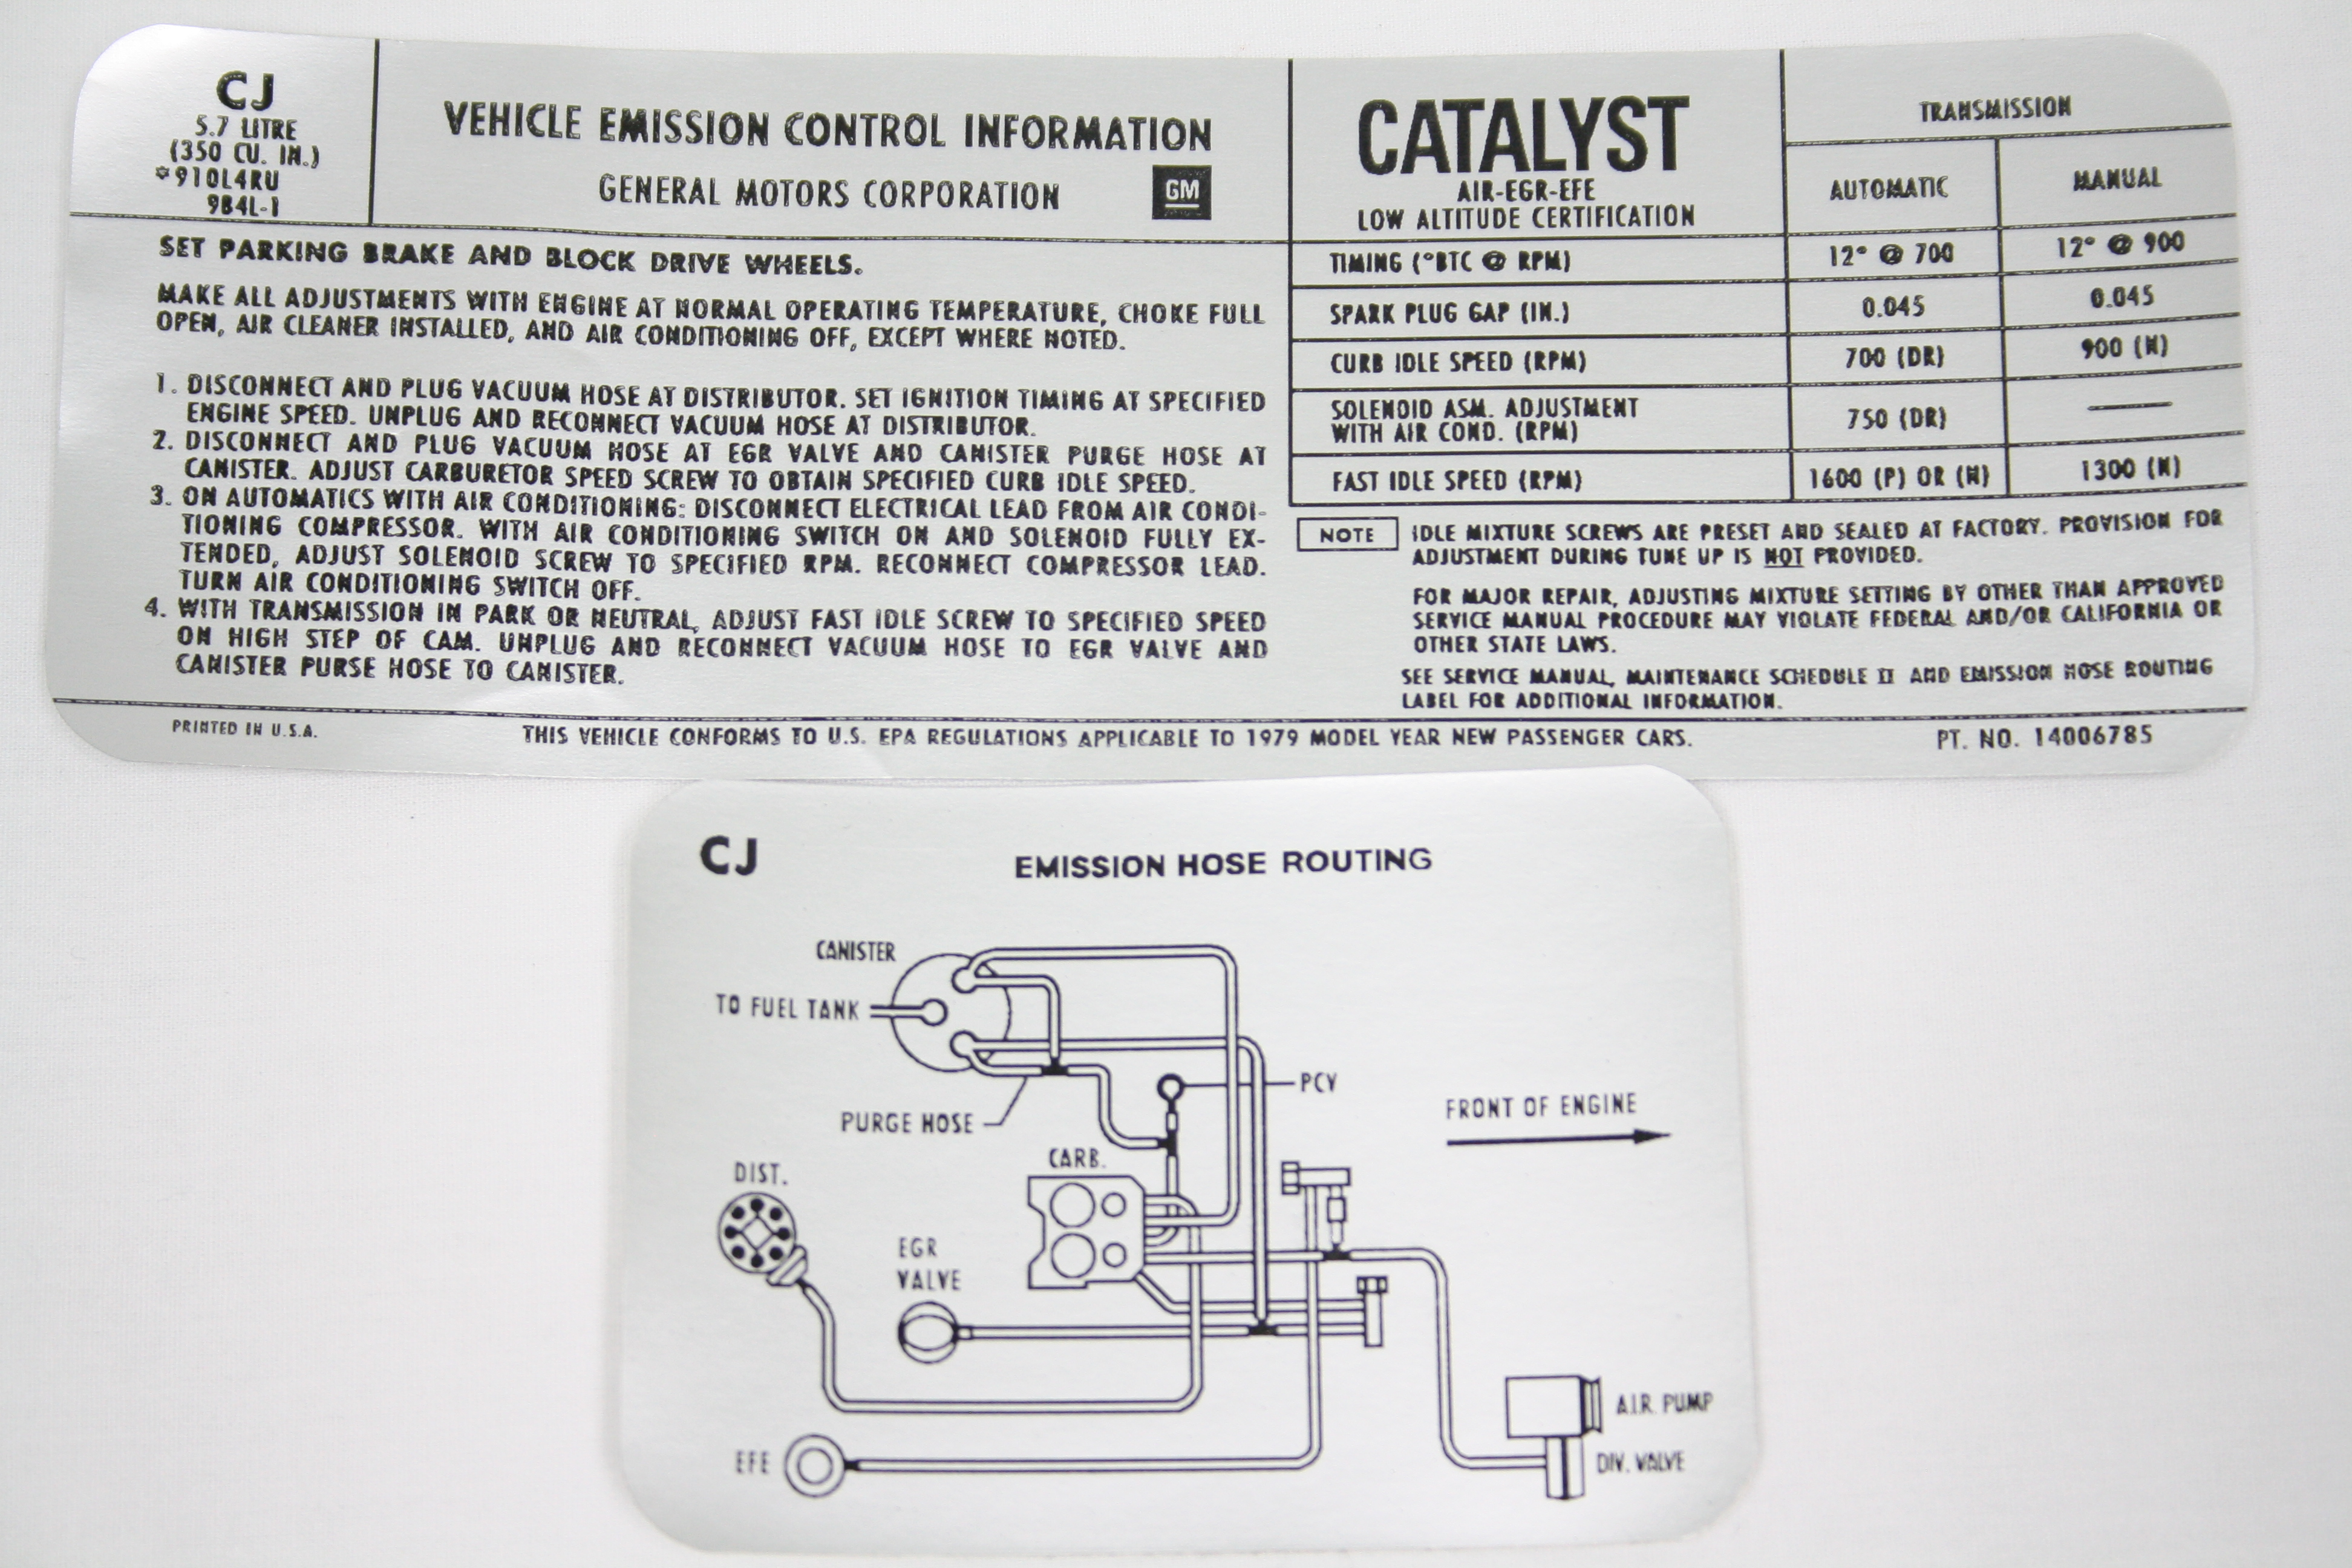 Keen Corvette Parts Diagrams Ar9 Crossover Wiring Diagram 1979 Emission Decal Automatic Manual Transmission 195 Hp Code Cj 14006785